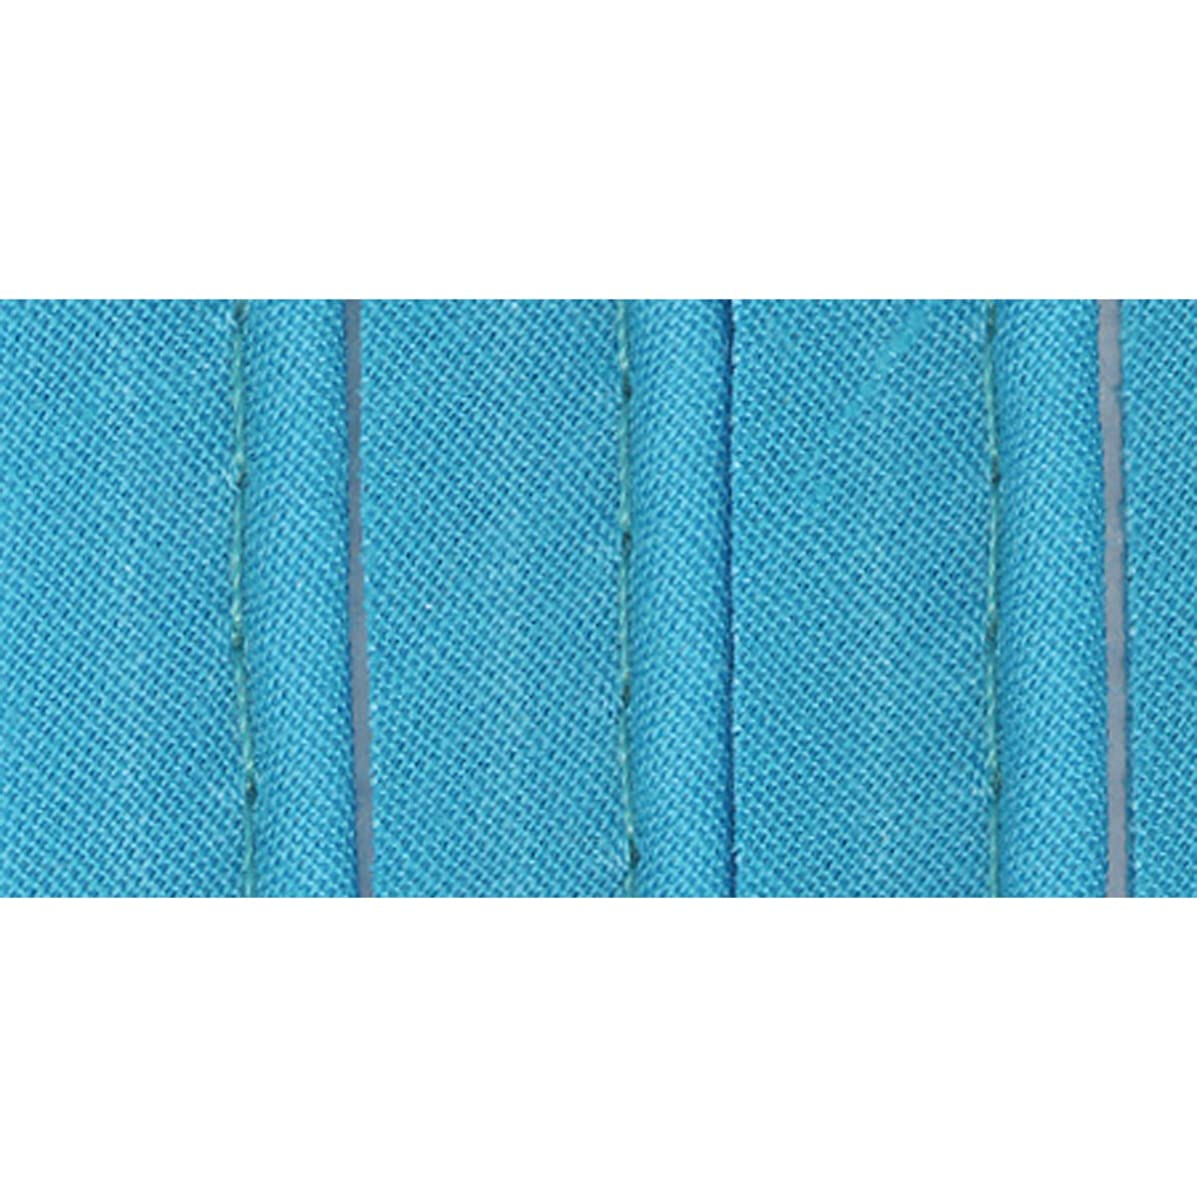 Wright Products 117-303-596 Wrights Maxi Piping Bias Tape, 2-1/2 yd, Blue Jewel